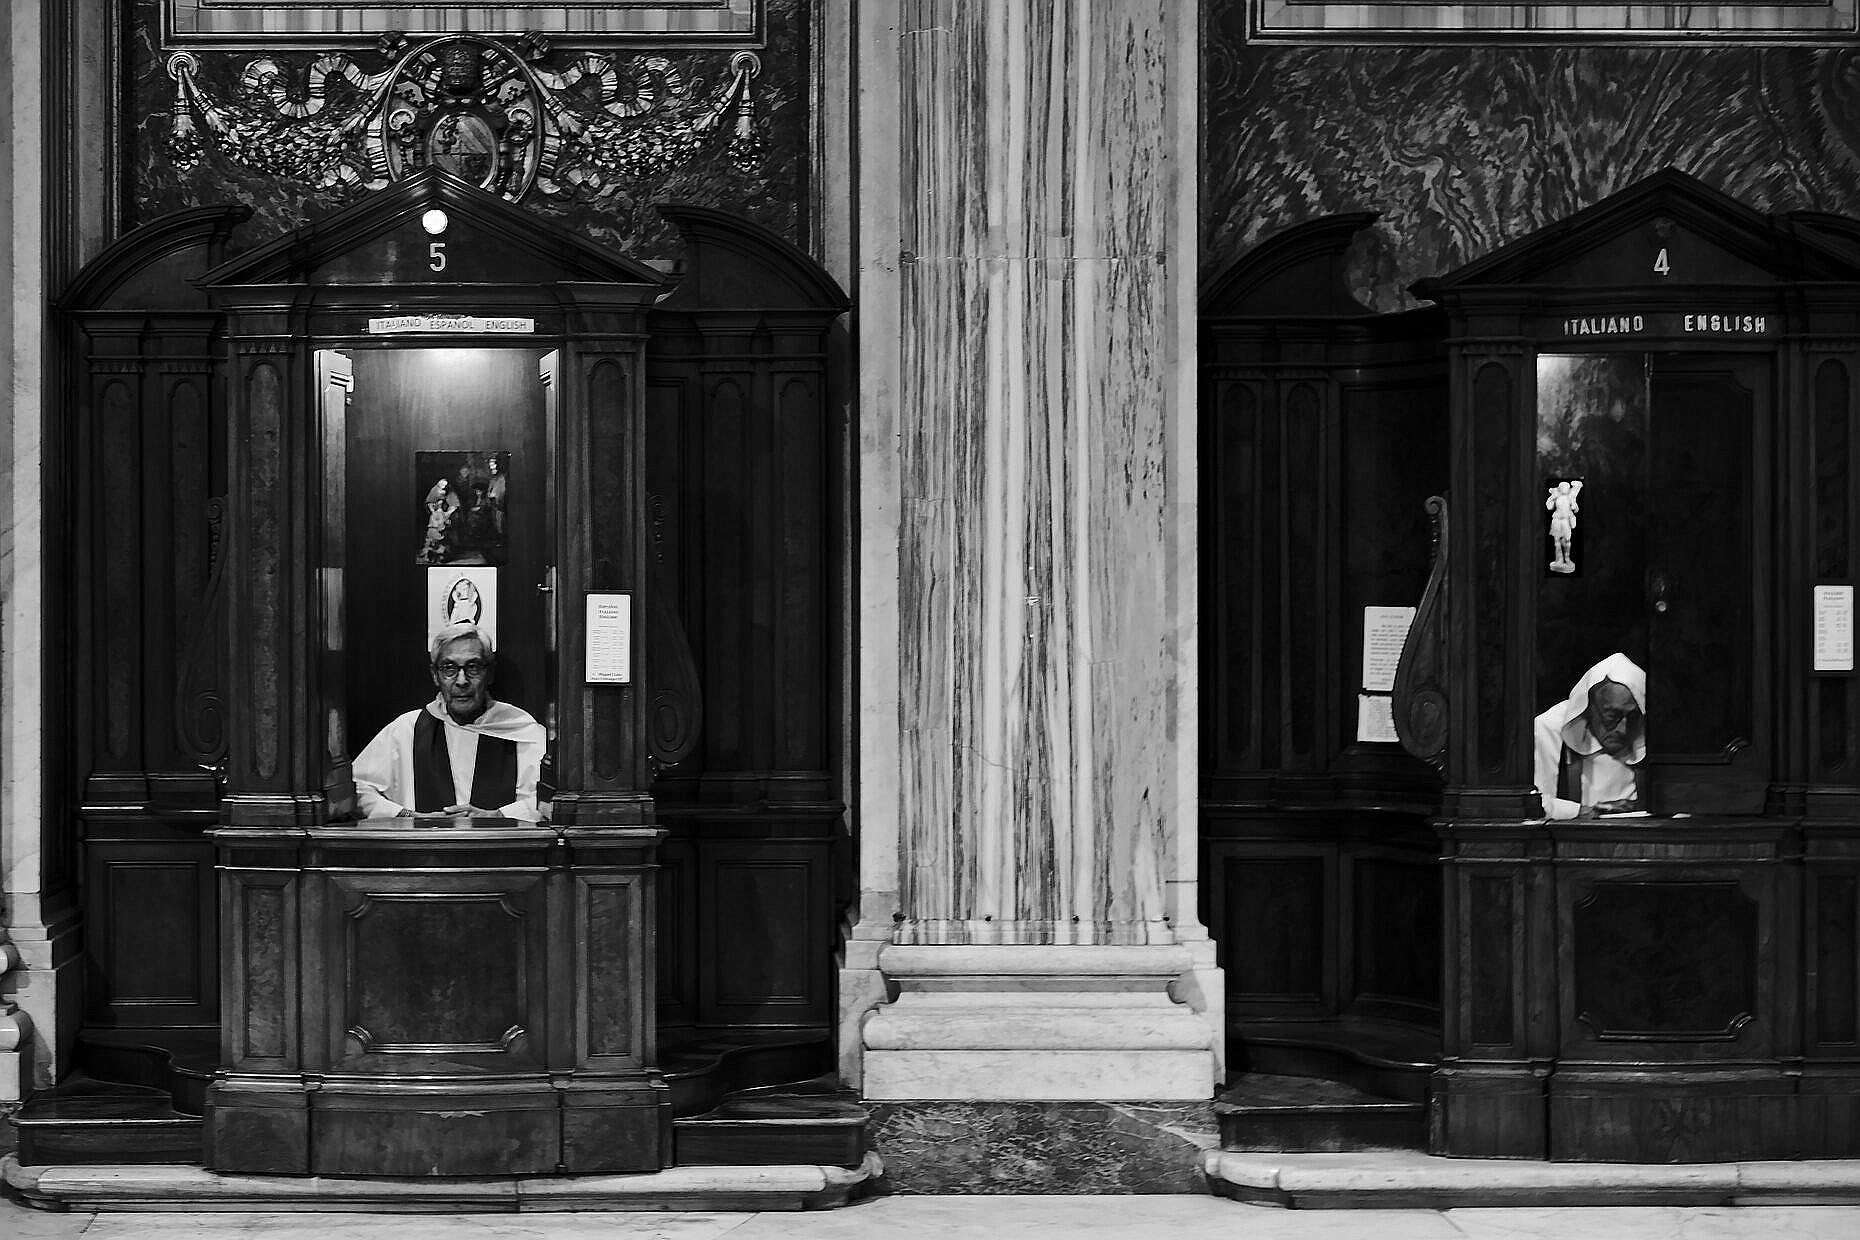 Priests taking confessions in the Basilica Santa Maria Maggiore in Rome.